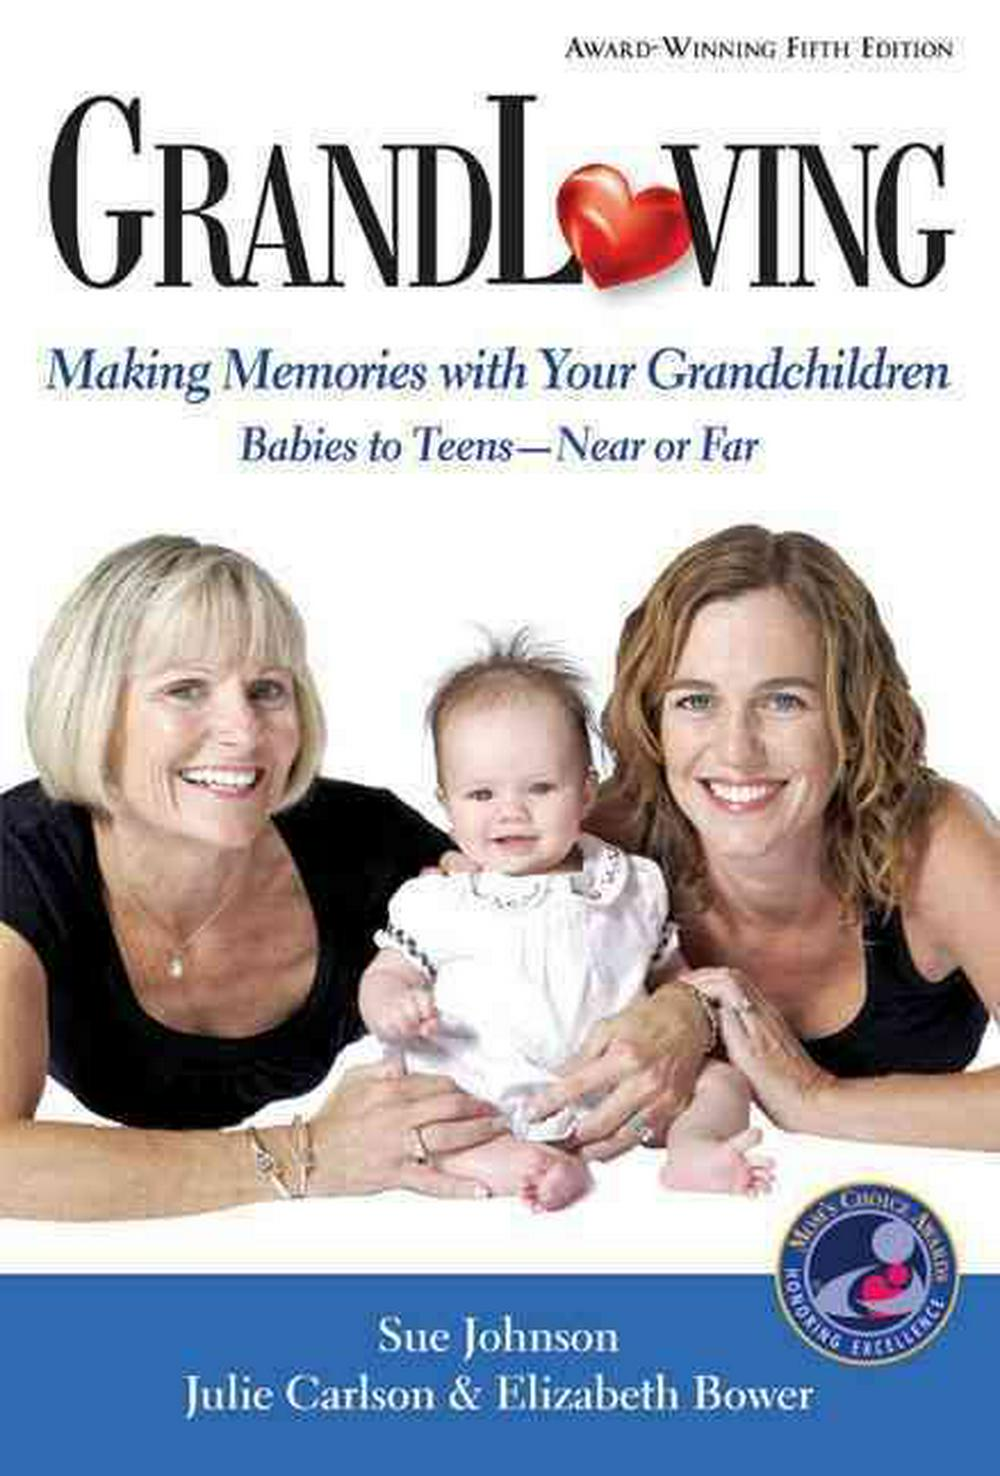 GrandLoving by Dr Sue Johnson, ISBN: 9780967534978